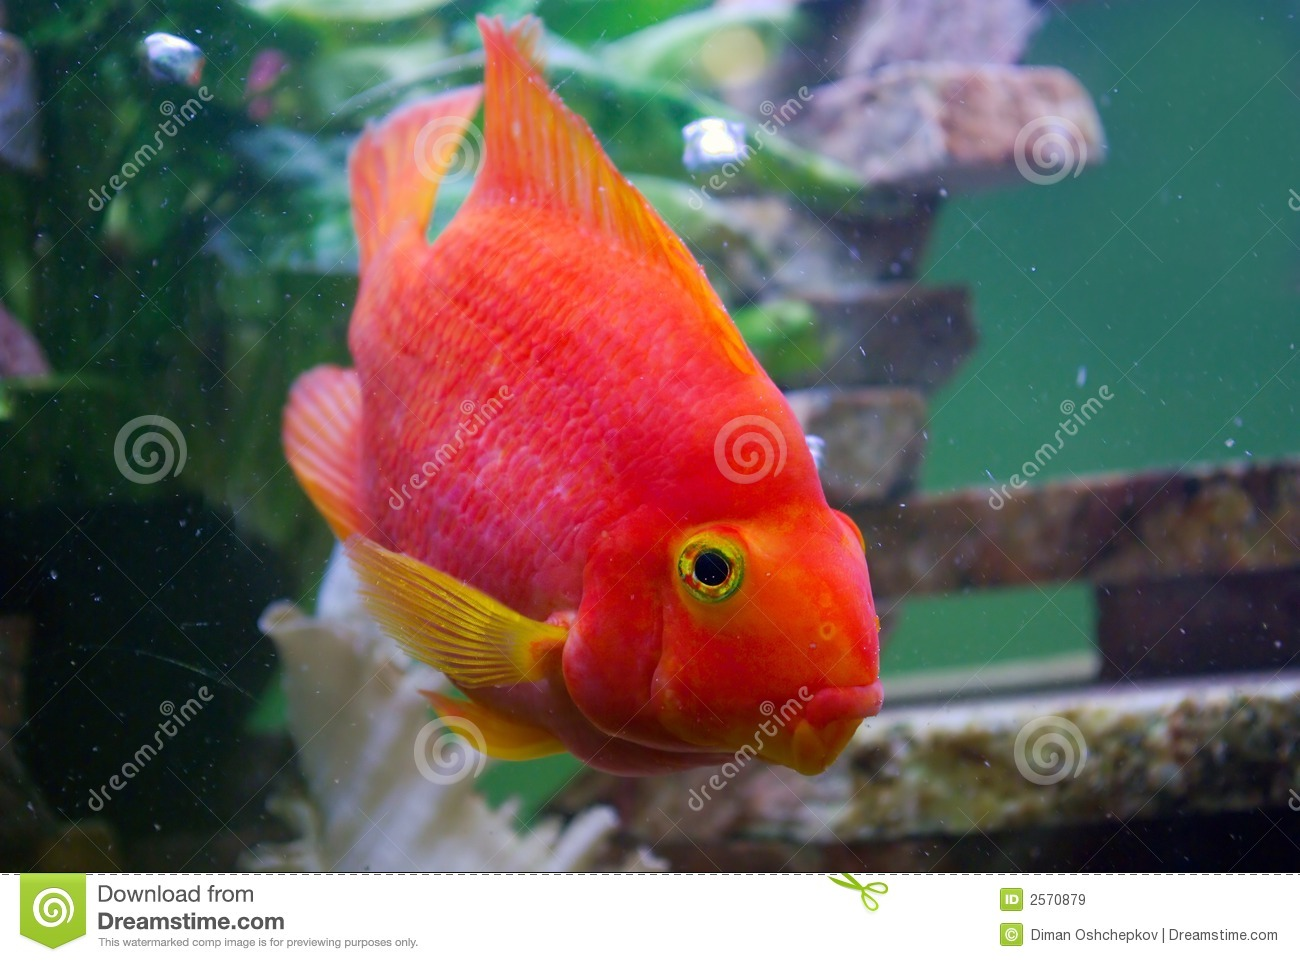 Red parrot fish in aquarium stock image image 2570879 for Parrot fish freshwater